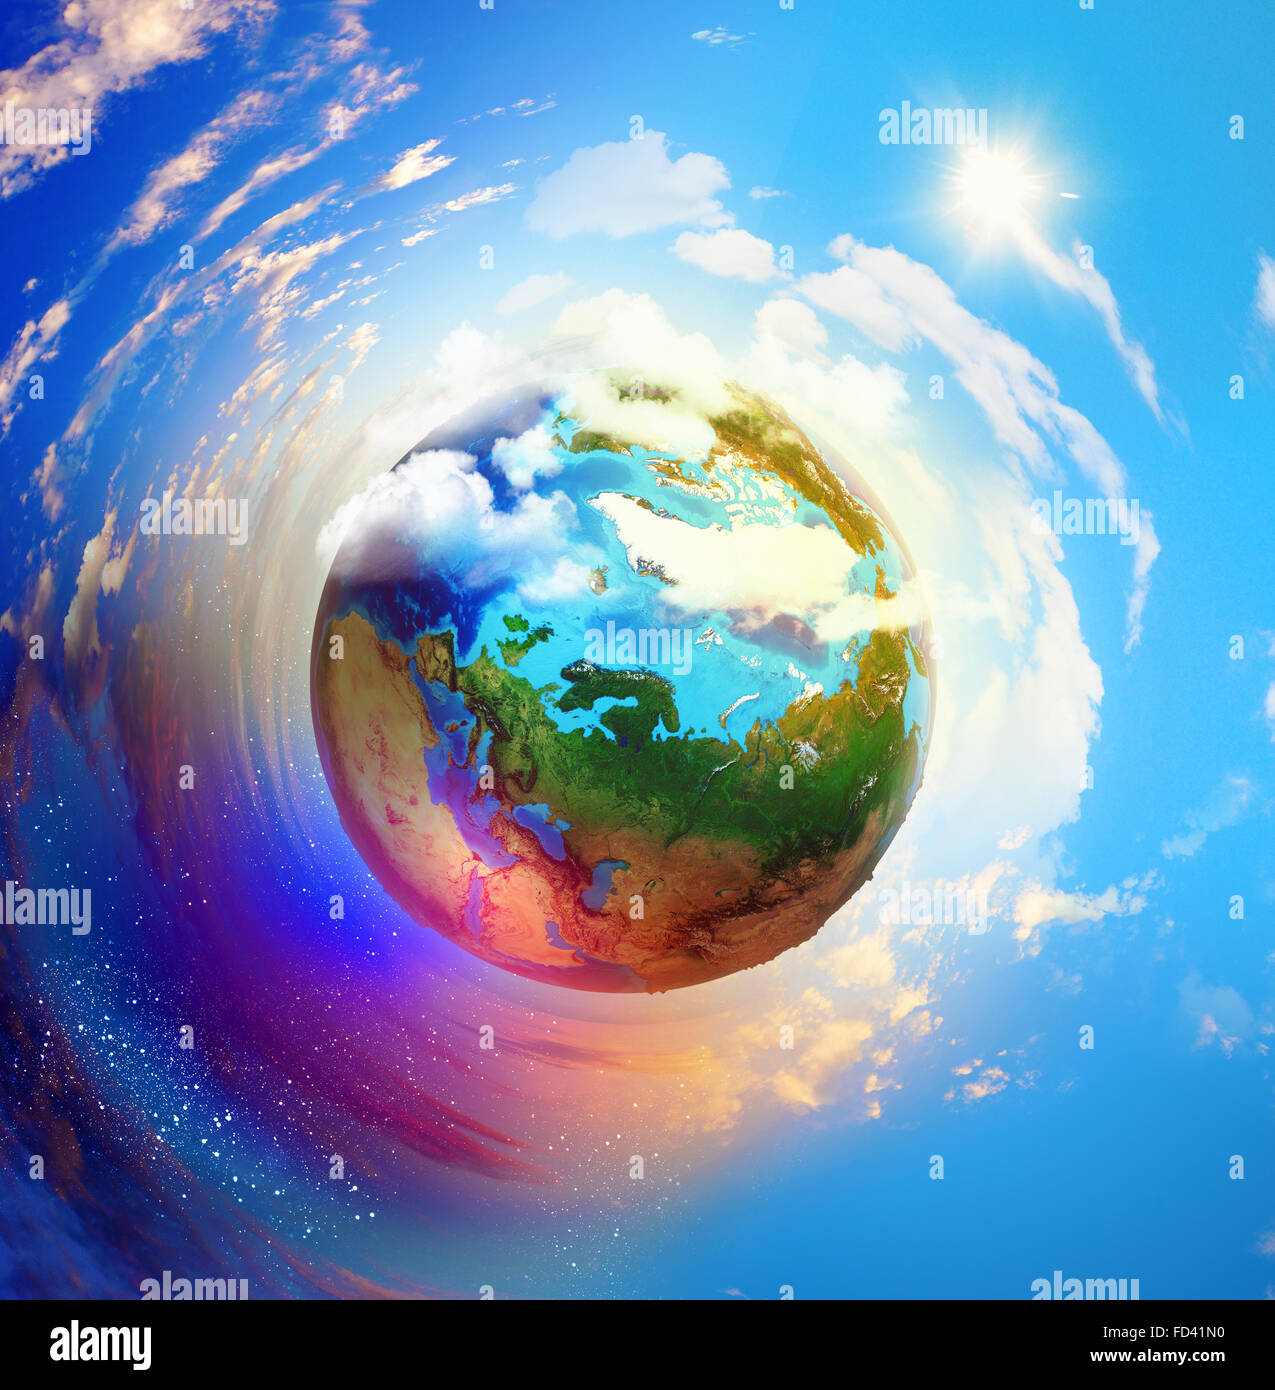 Image Of Planet Earth Planet Save Our Planet Elements Of